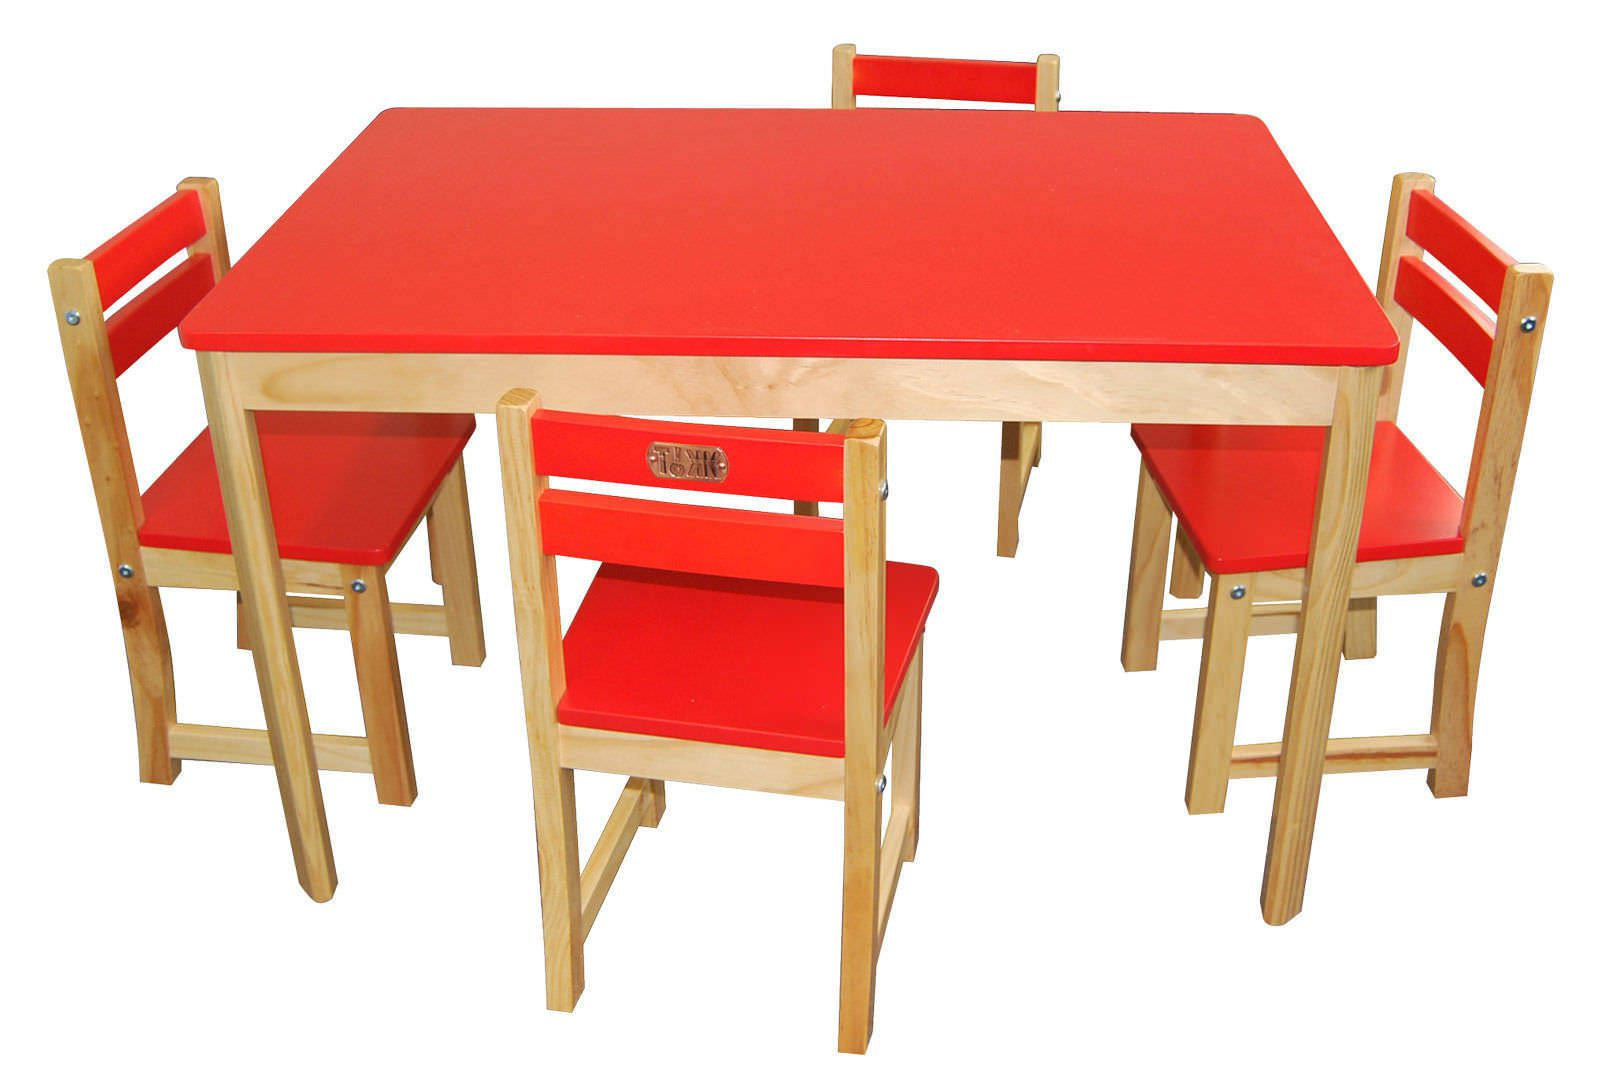 childrens play table 4 chairs set rectangle red kids wood furniture ebay. Black Bedroom Furniture Sets. Home Design Ideas